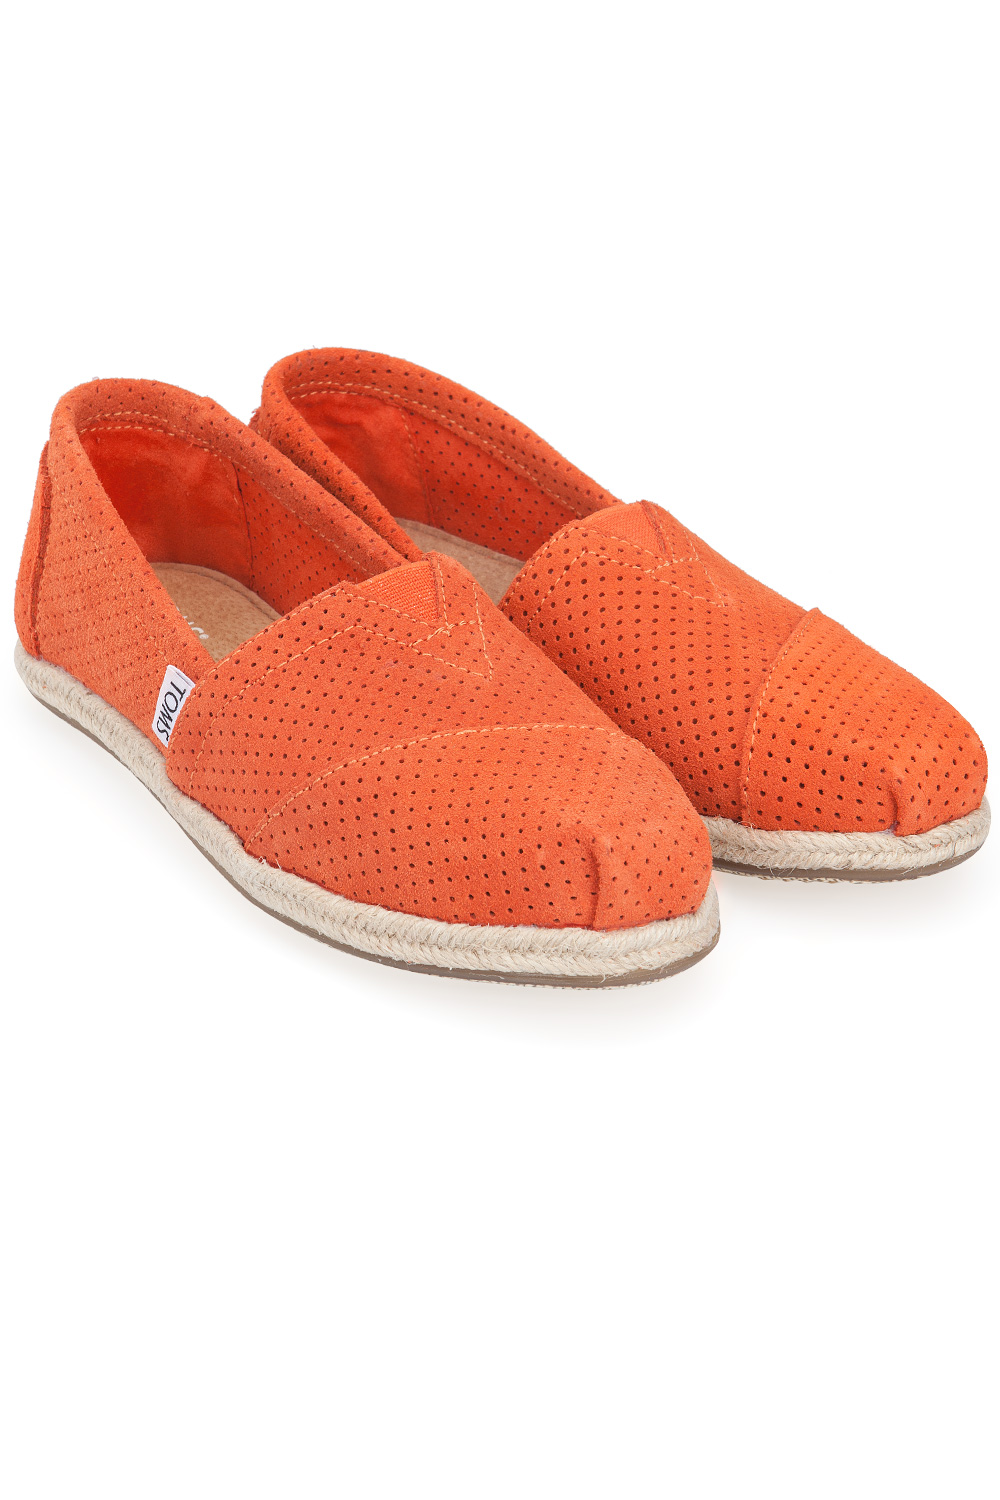 Toms Deep Orange Perforated Womens Slip On Orange 365ist